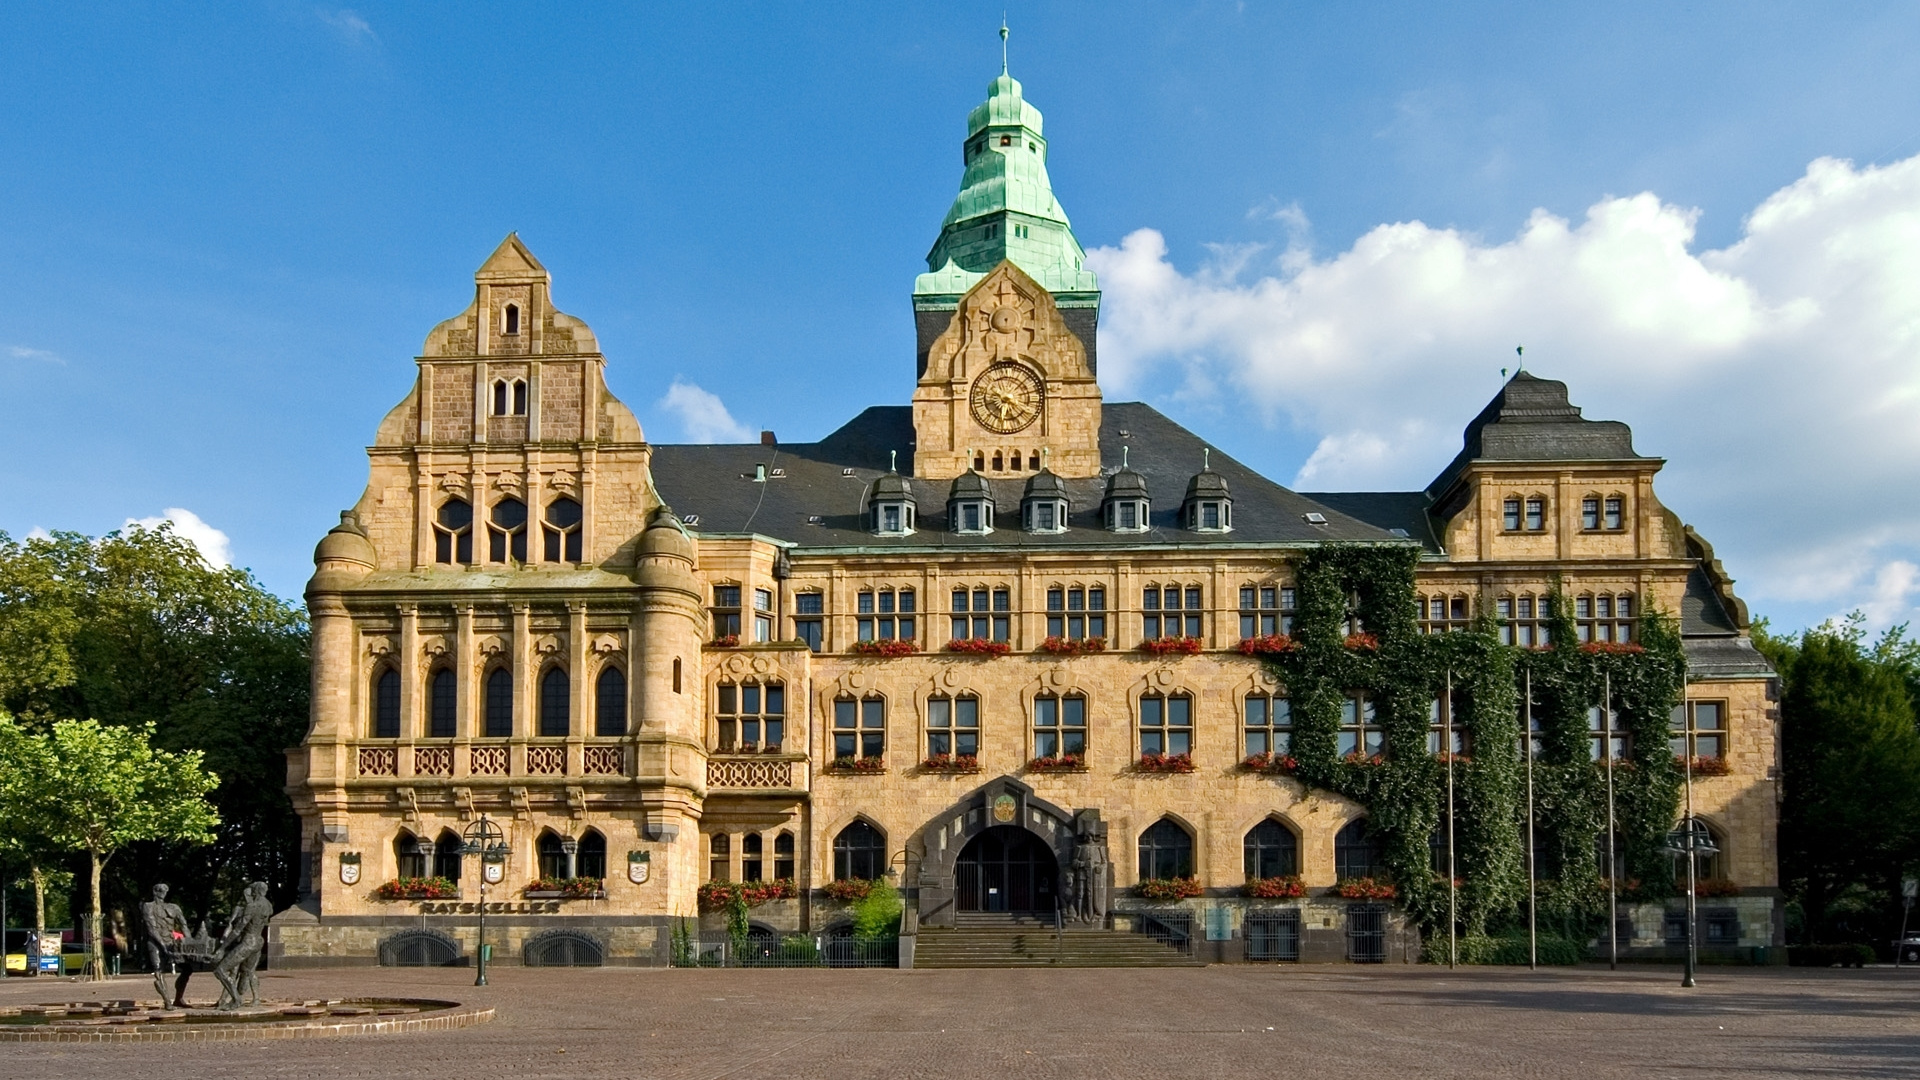 Town Hall In Recklinghausen Germany Architecture